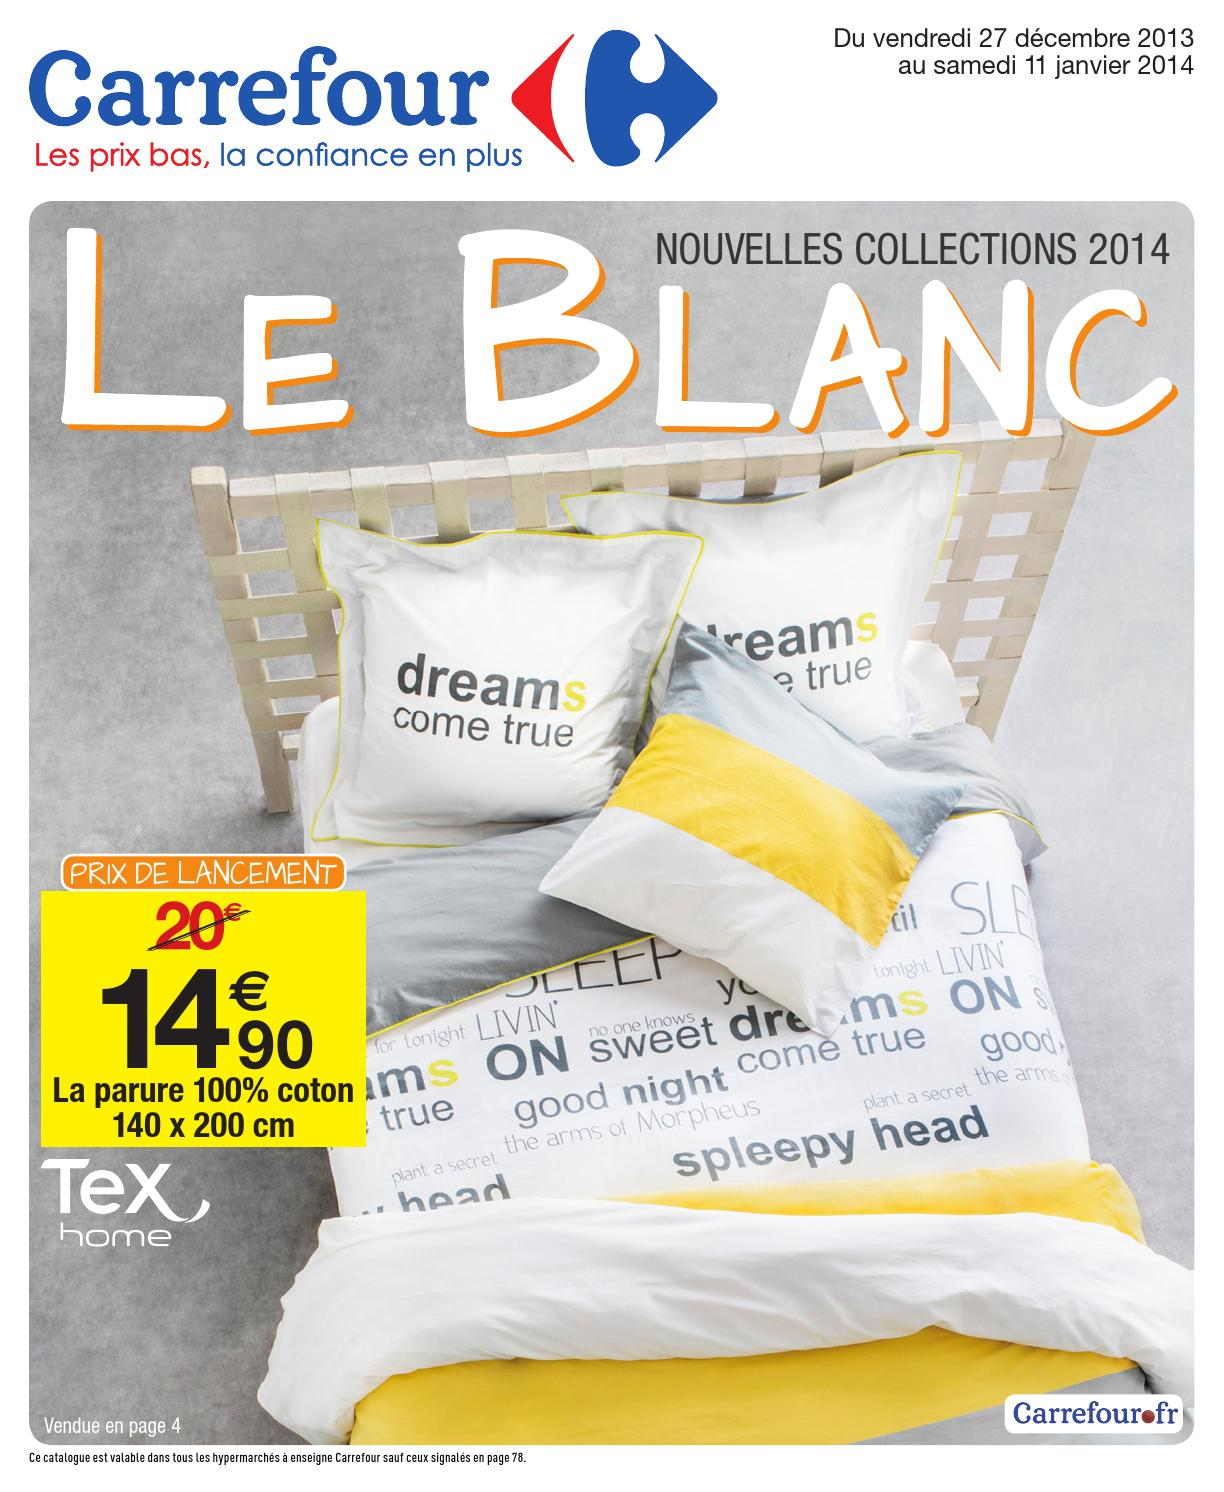 Bien-aimé Catalogue Carrefour - 27.12.2013-11.01.2014 by joe monroe - issuu RP02